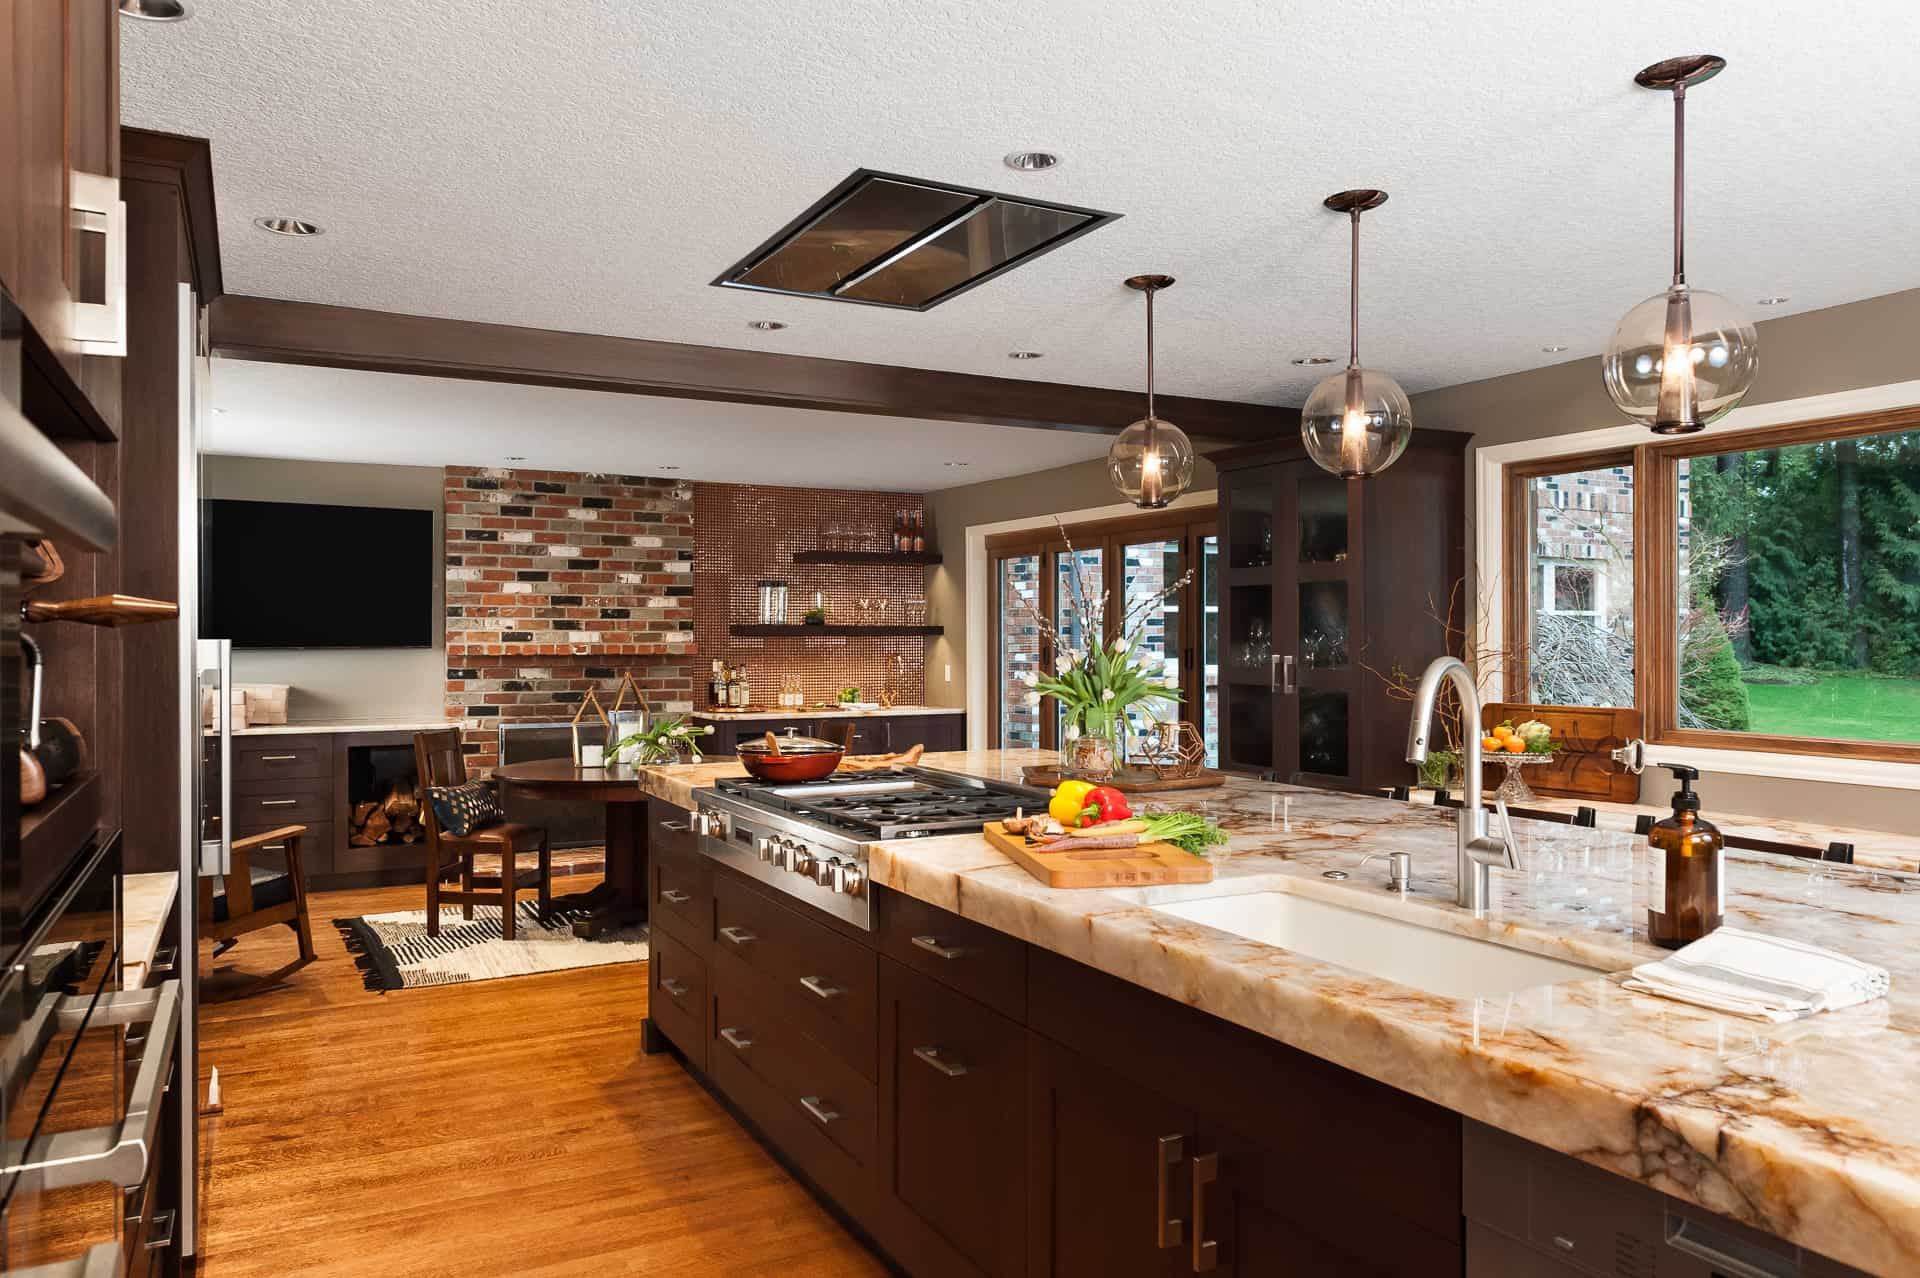 Neil Kelly updated and remodeled this craftsman kitchen